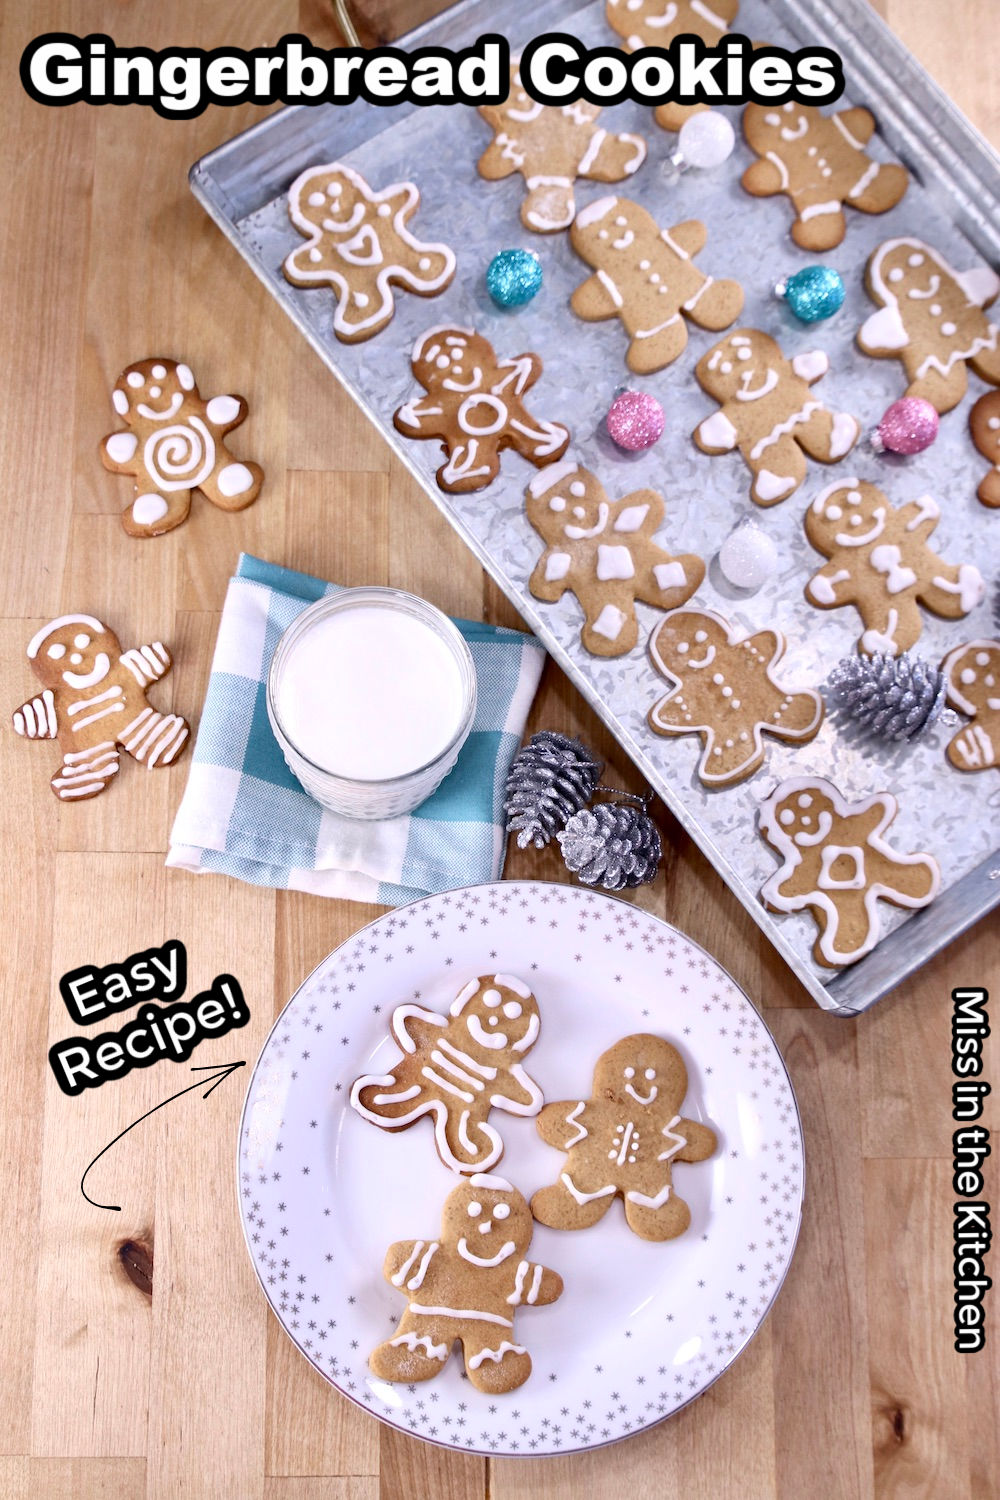 Gingerbread Cookies on a plate and on a tray with Christmas decorations, text overlay